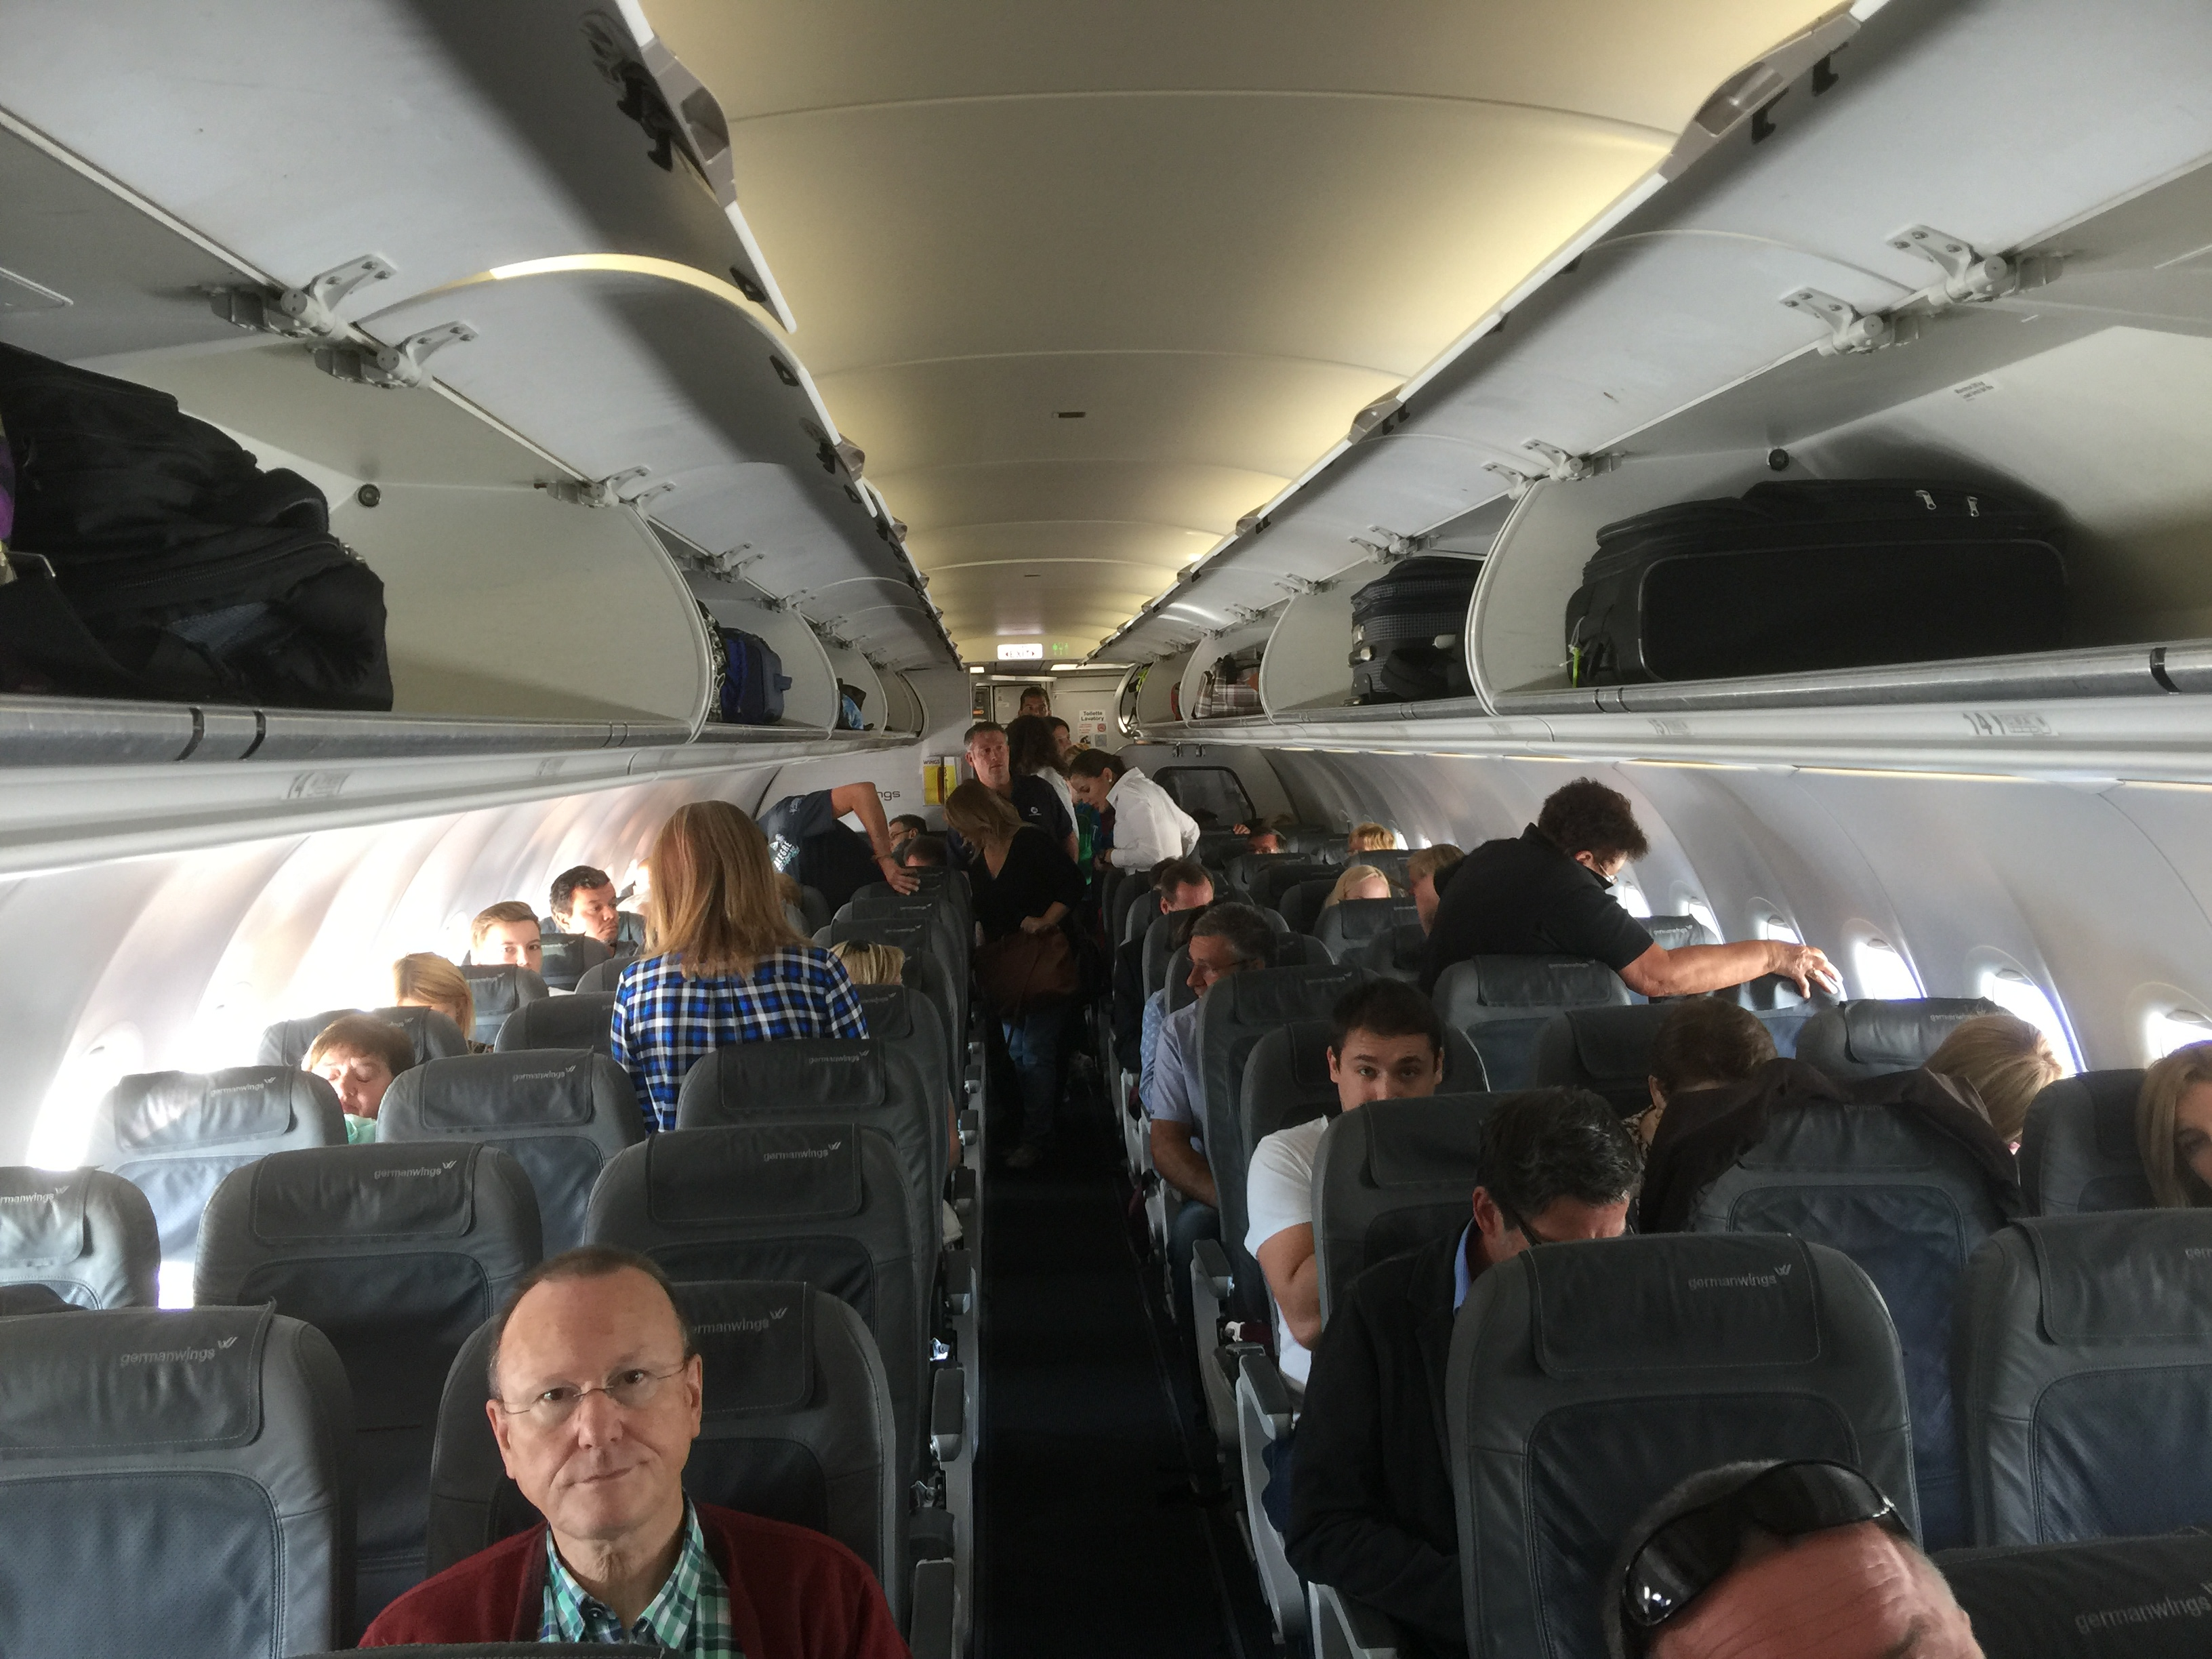 Image result for commotion inside plane